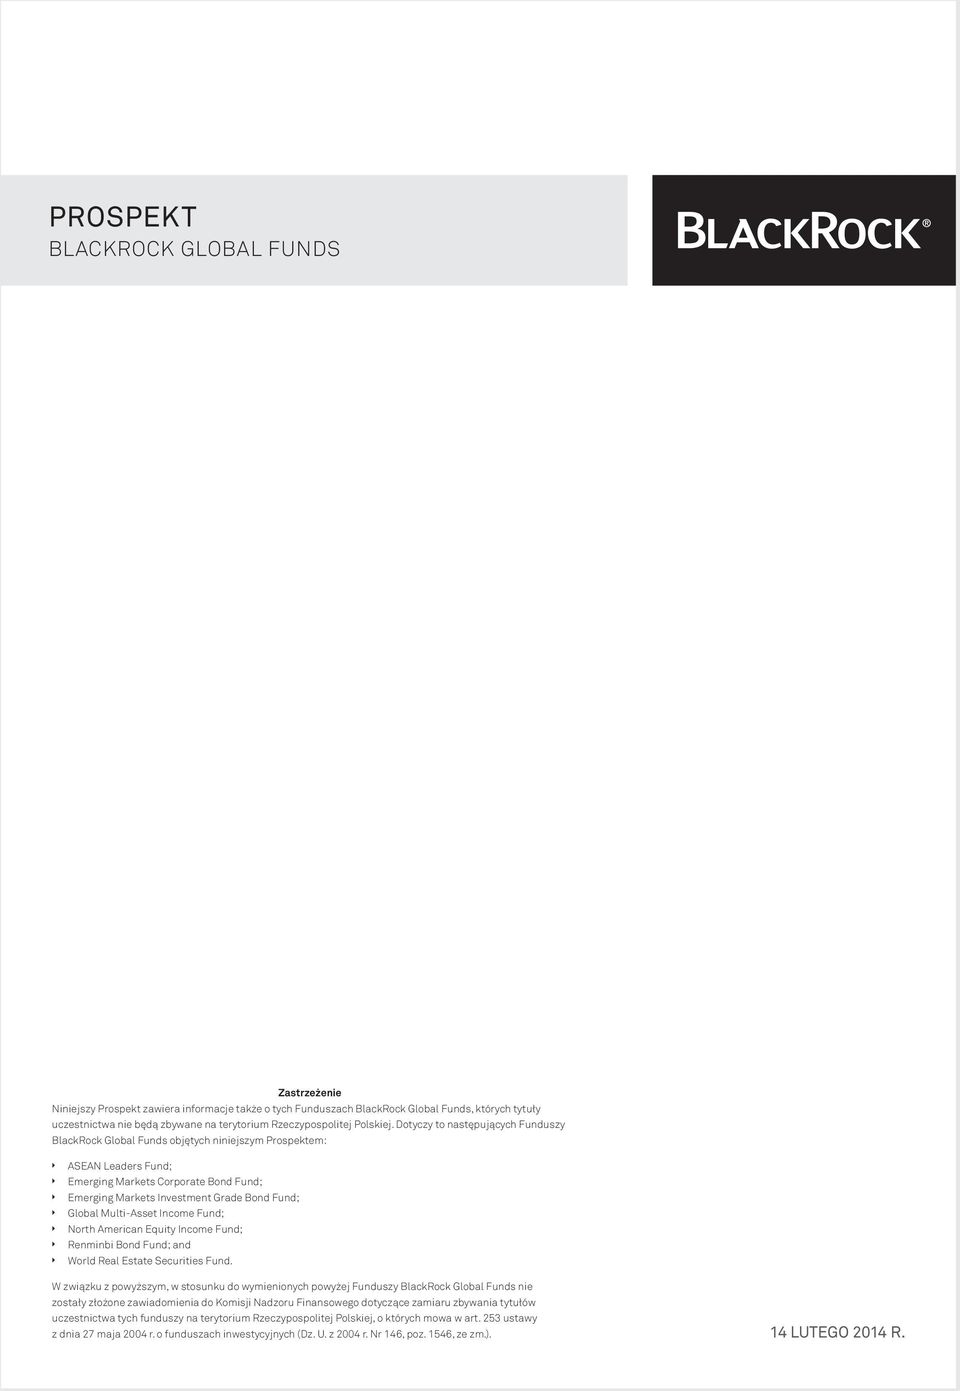 Dotyczy to następujących Funduszy BlackRock Global Funds objętych niniejszym Prospektem: ASEAN Leaders Fund; Emerging Markets Corporate Bond Fund; Emerging Markets Investment Grade Bond Fund; Global